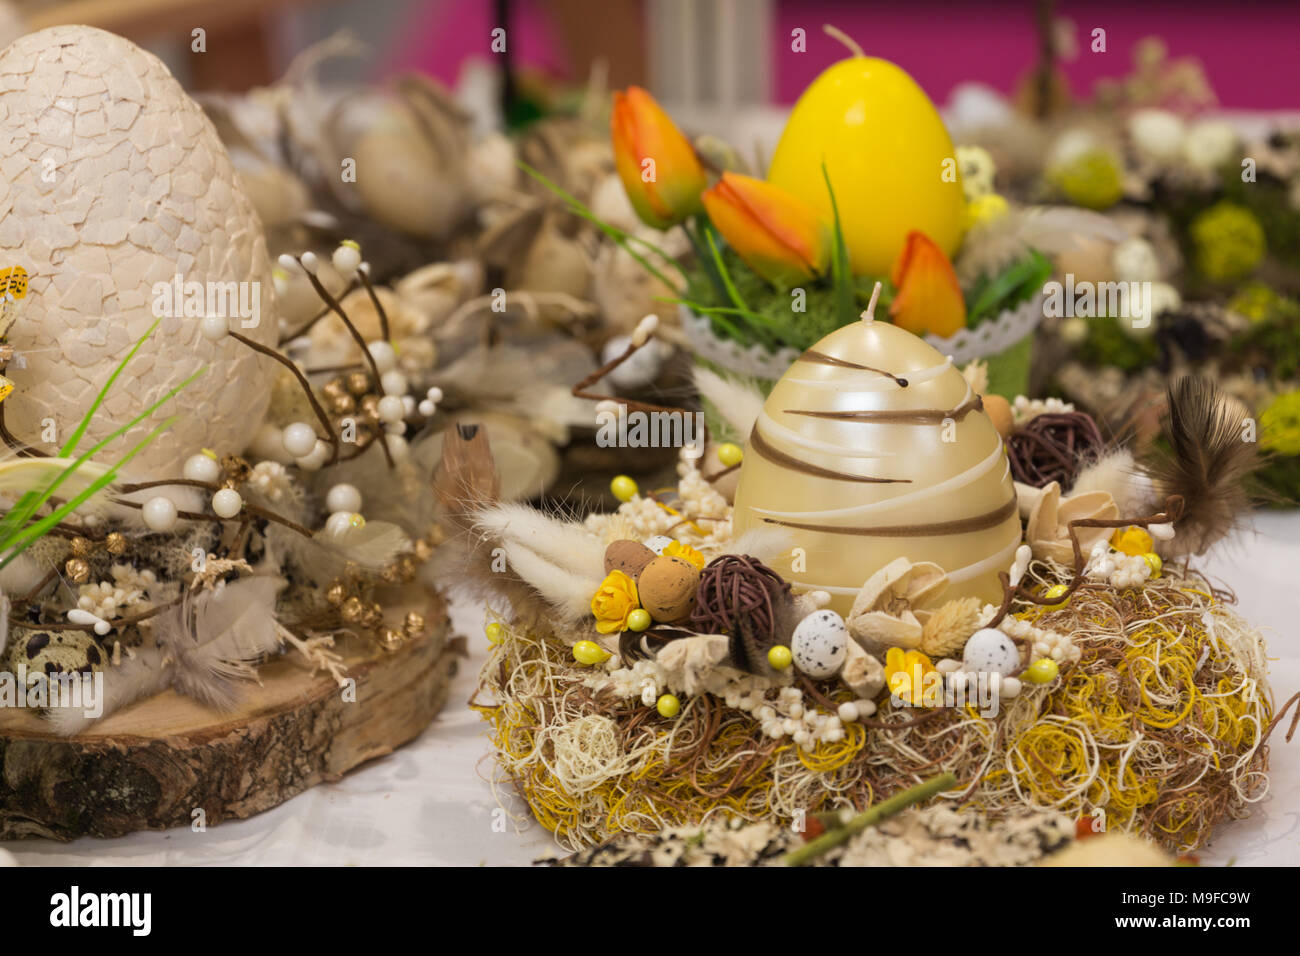 Easter decorations on the table - Stock Image